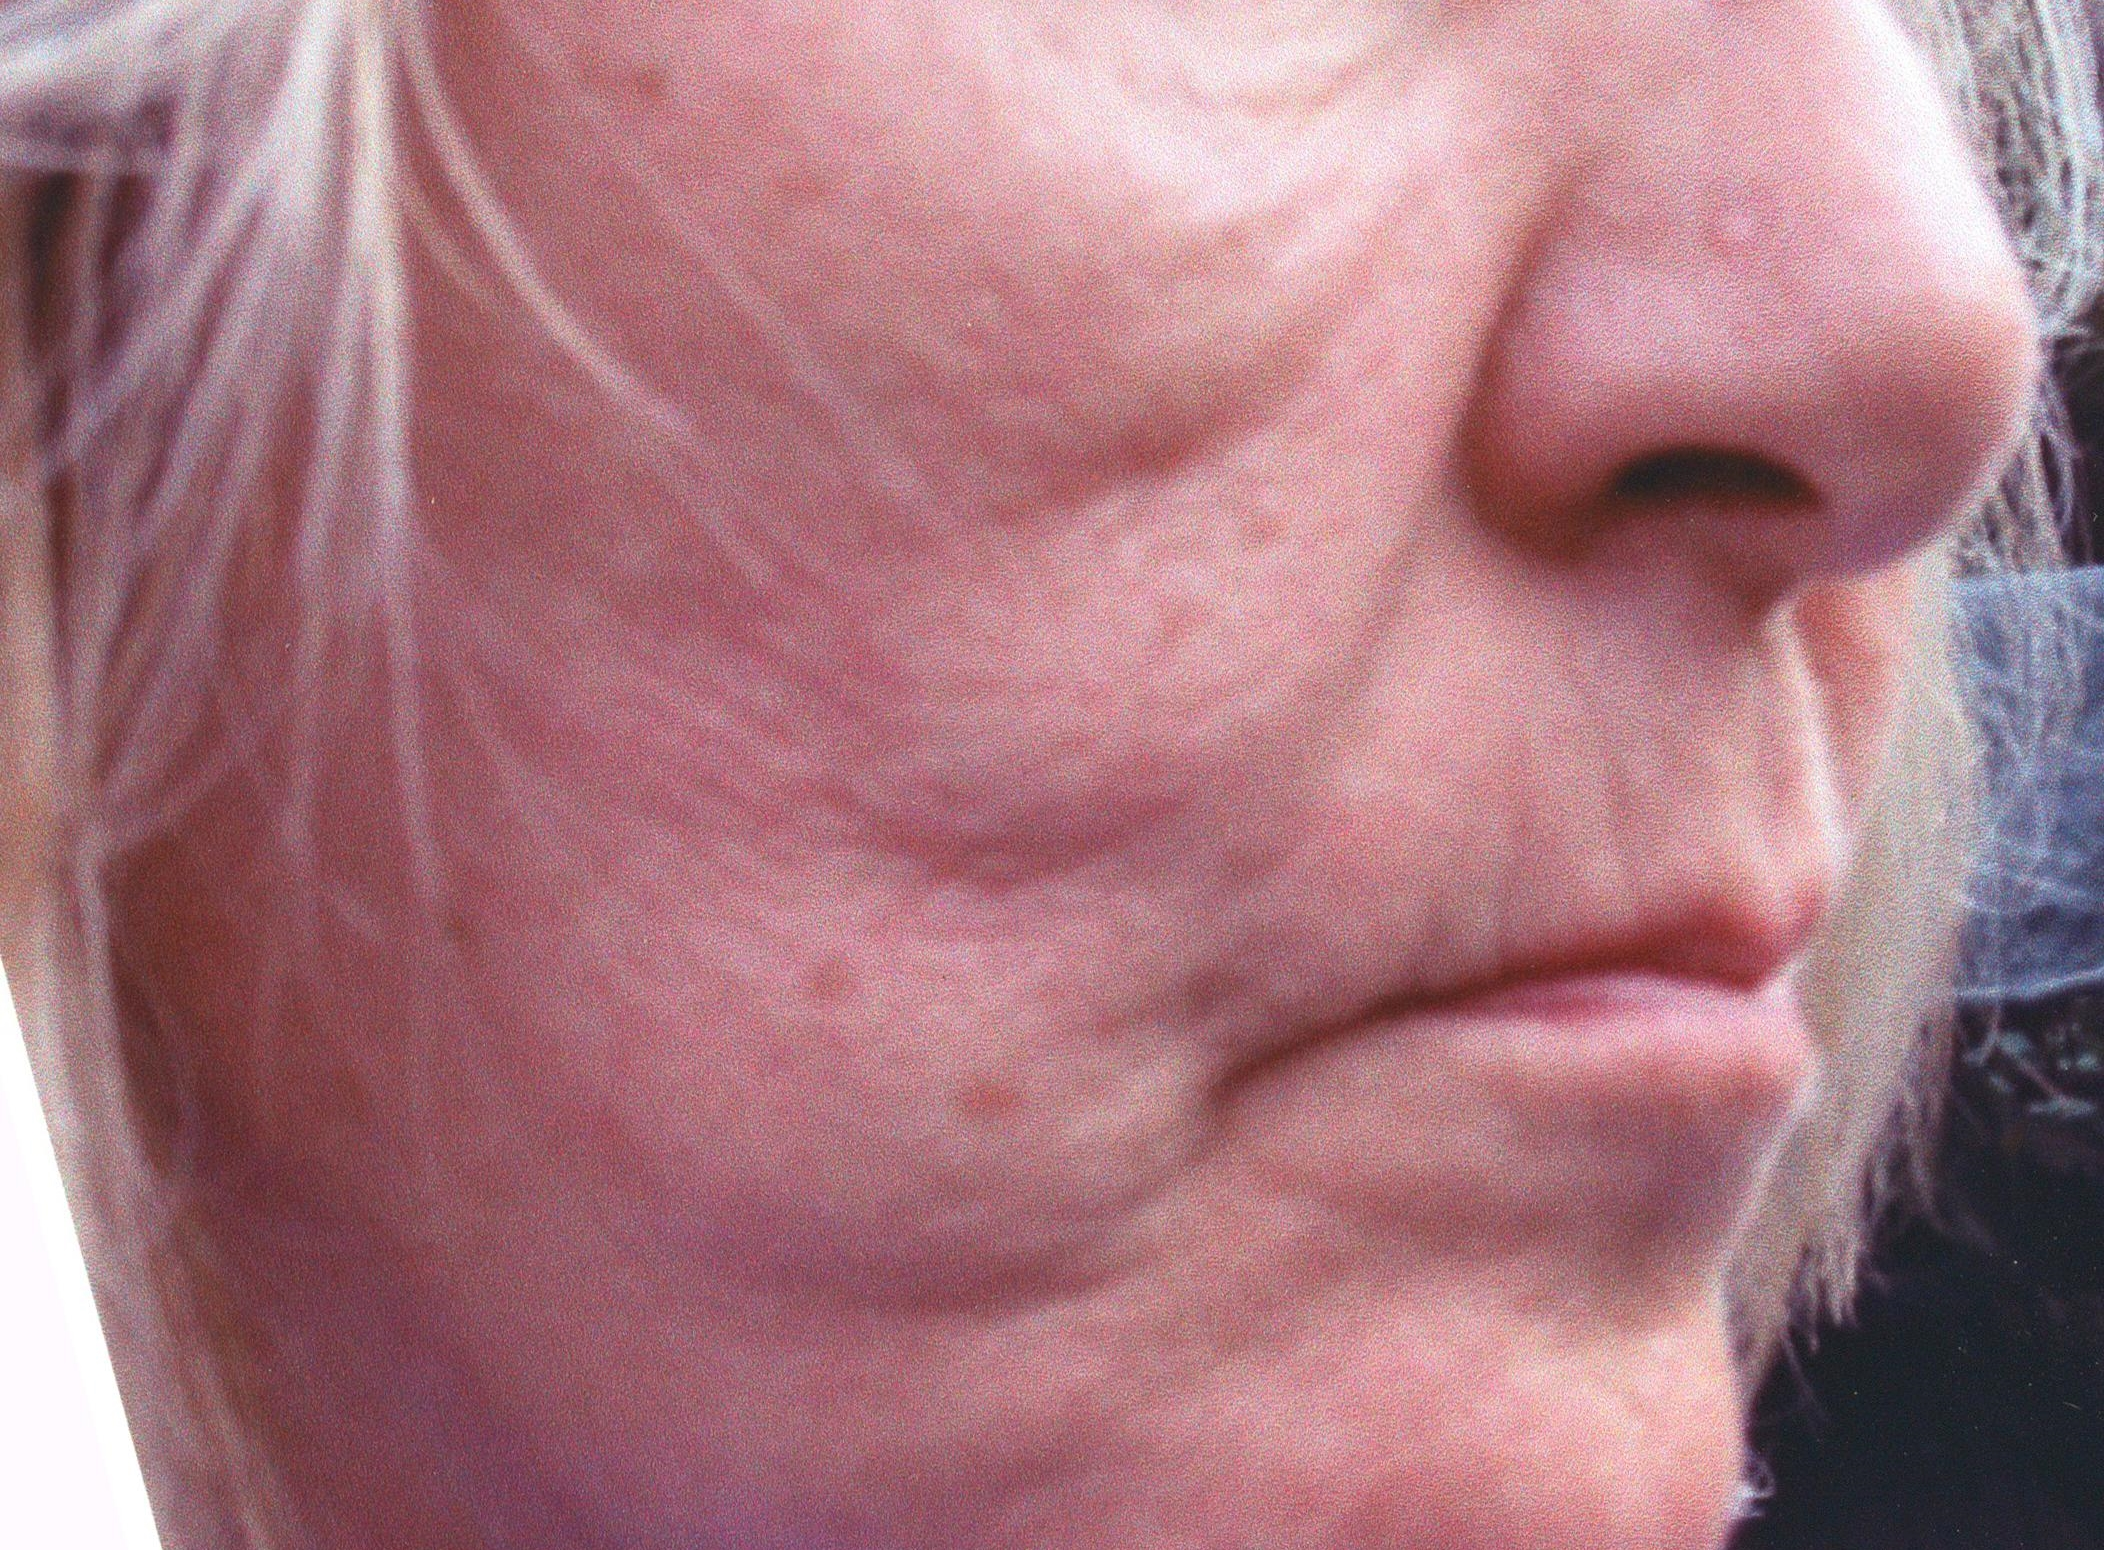 ACUPUNCTURE FACE LIFT - BEFORE